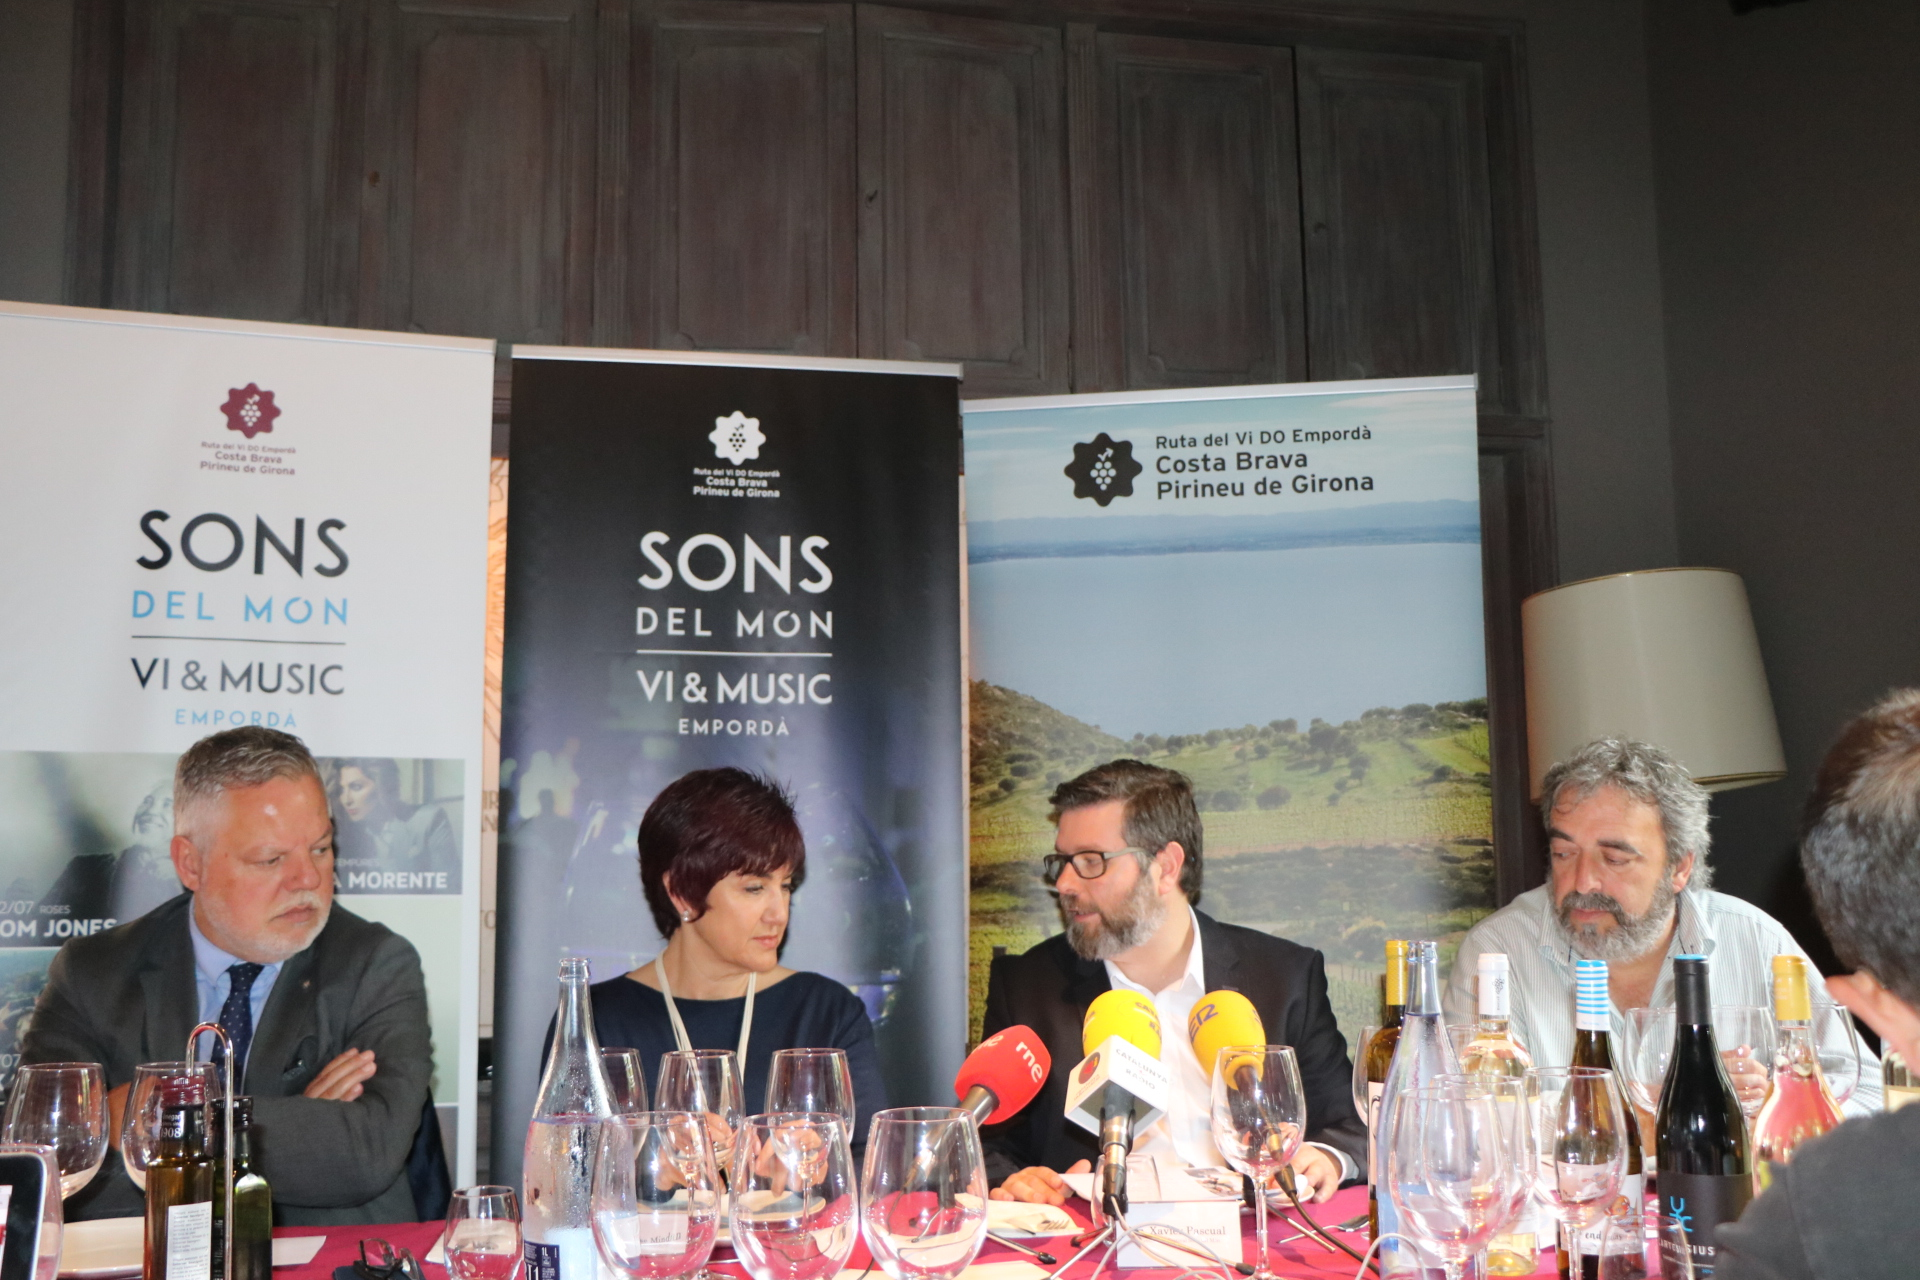 Tom Jones, Txarango, Gertrudis, David Bustamante i Loquillo actuaran a Roses dins el Sons del Món 2017